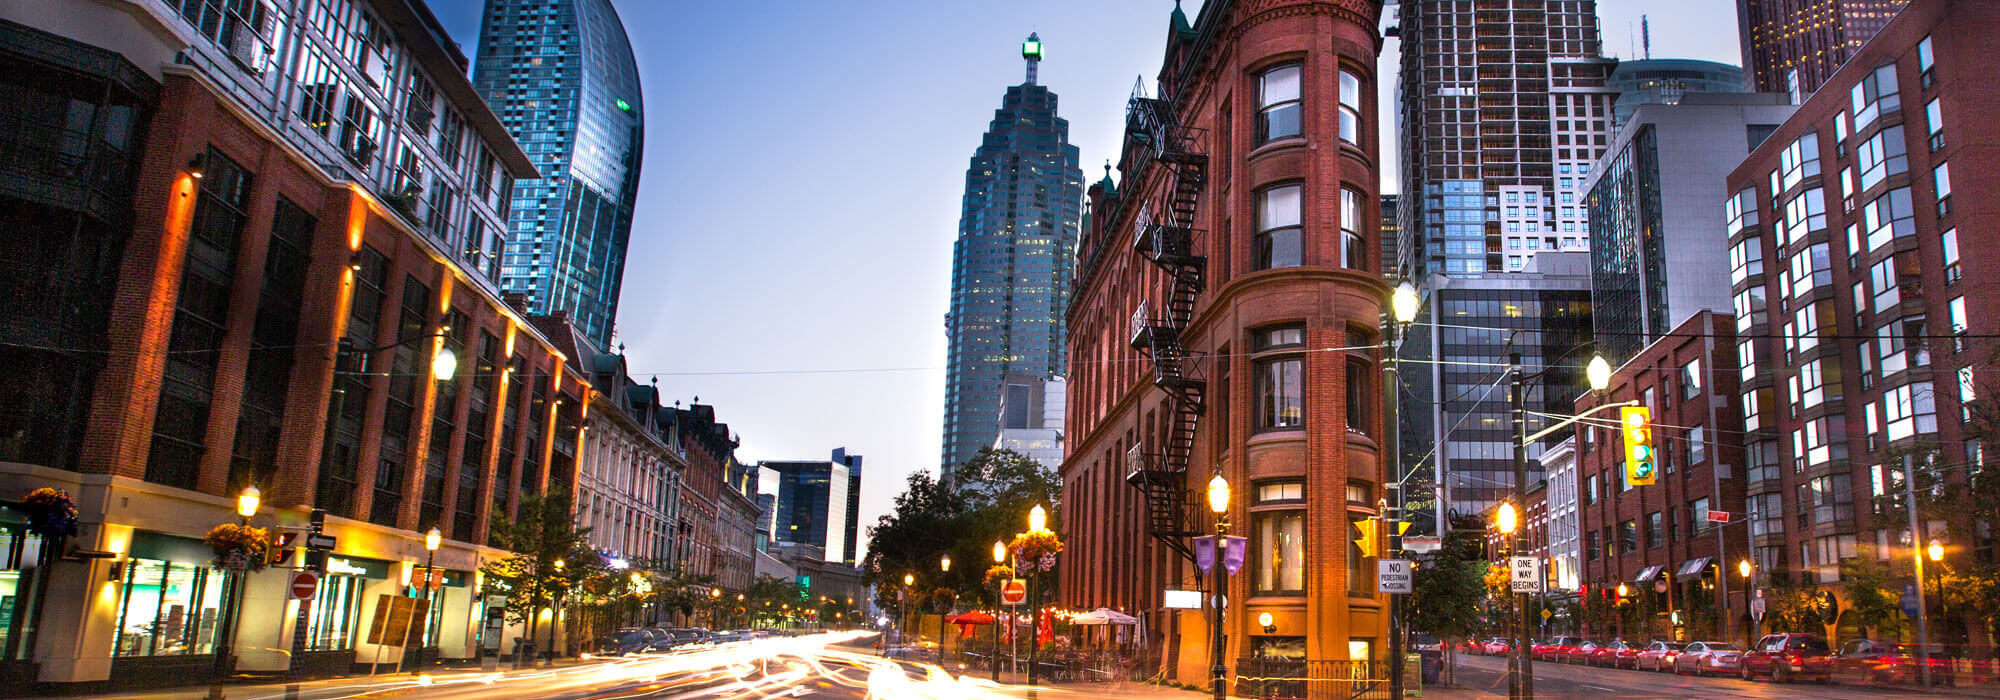 Evening Downtown Toronto Gooderham Building at Wellington St W